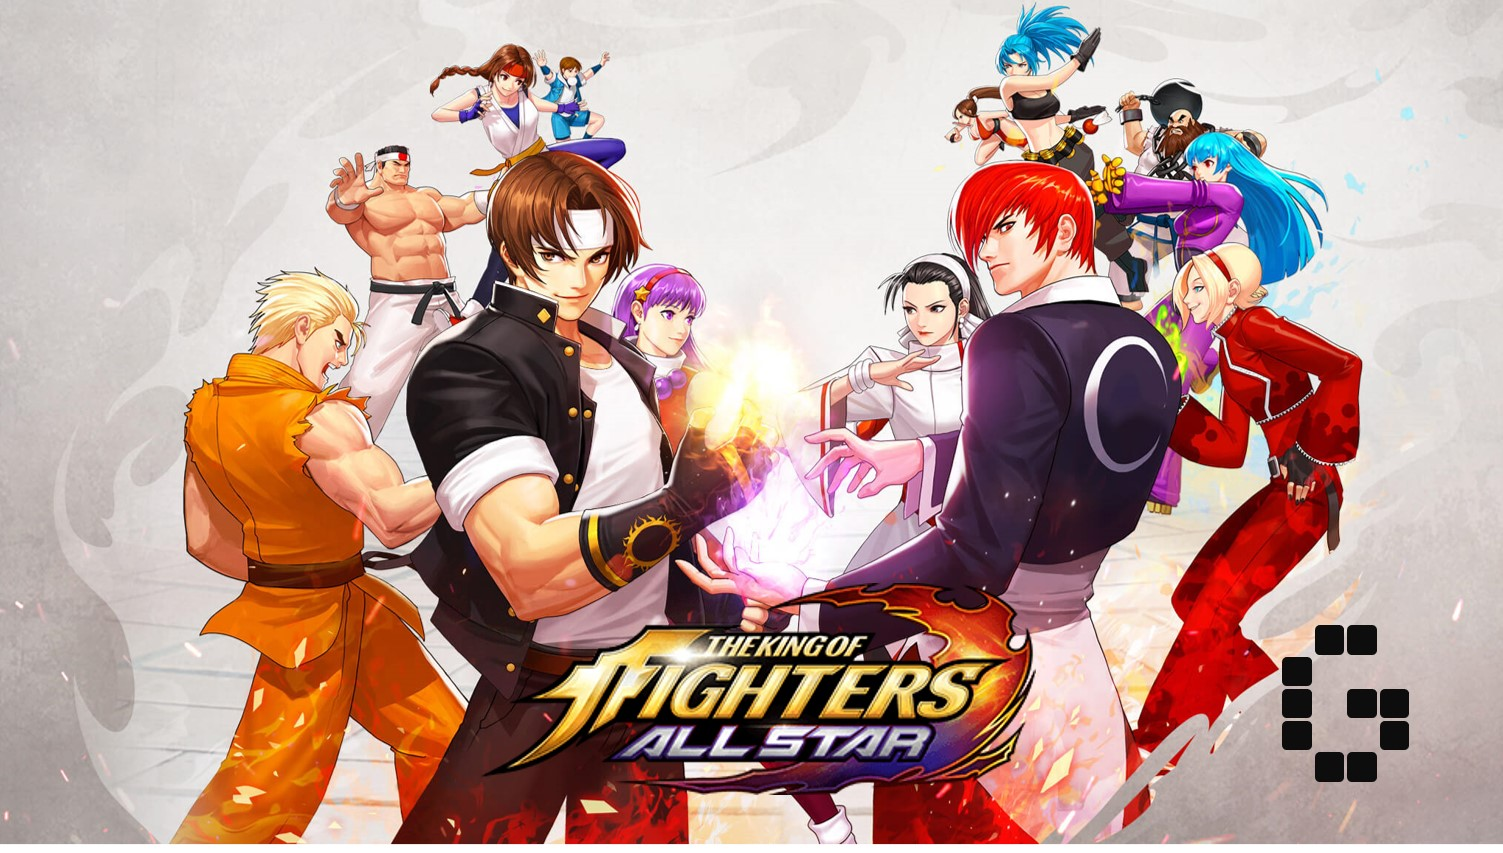 Are You Ready To Become The Best Fighter King Of Fighters Allstar